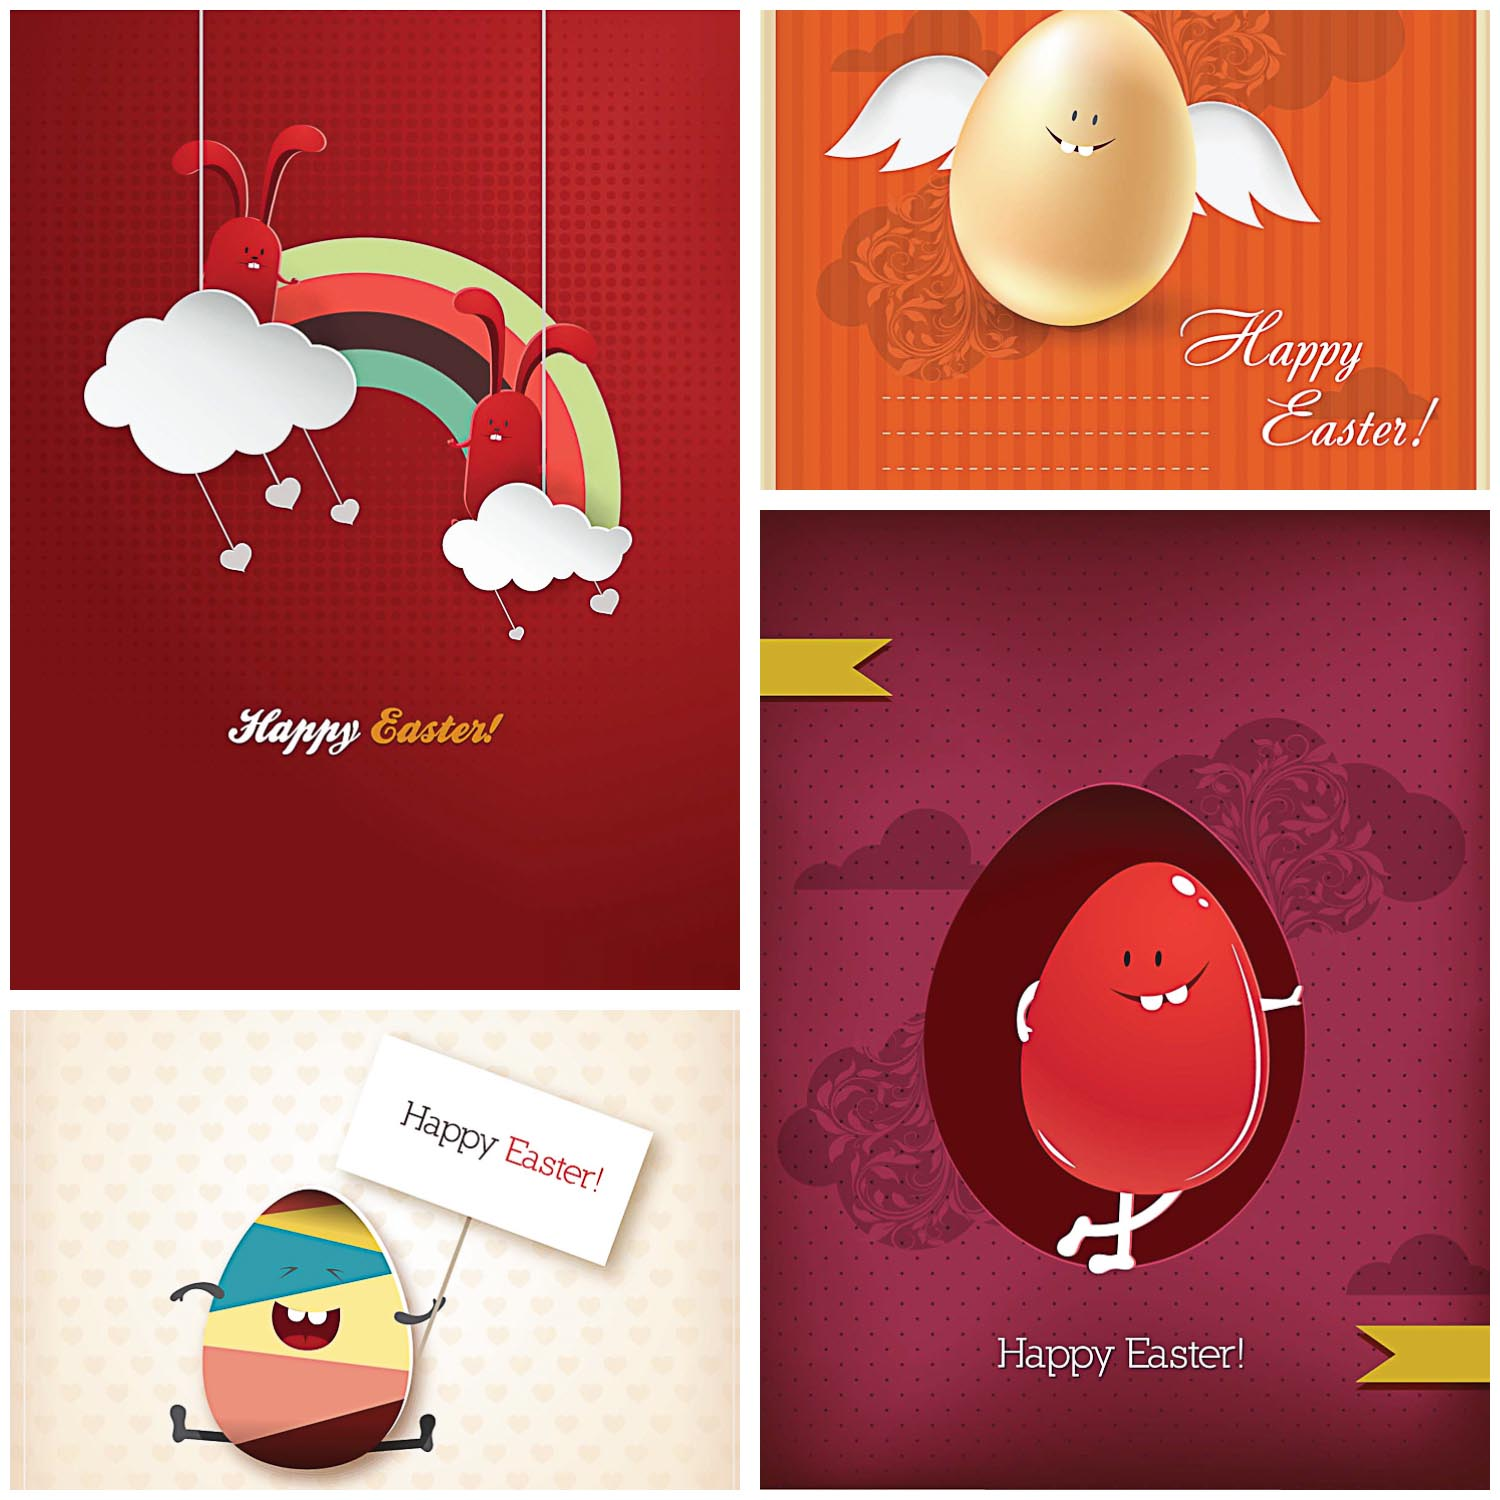 Funny Easter greeting cards